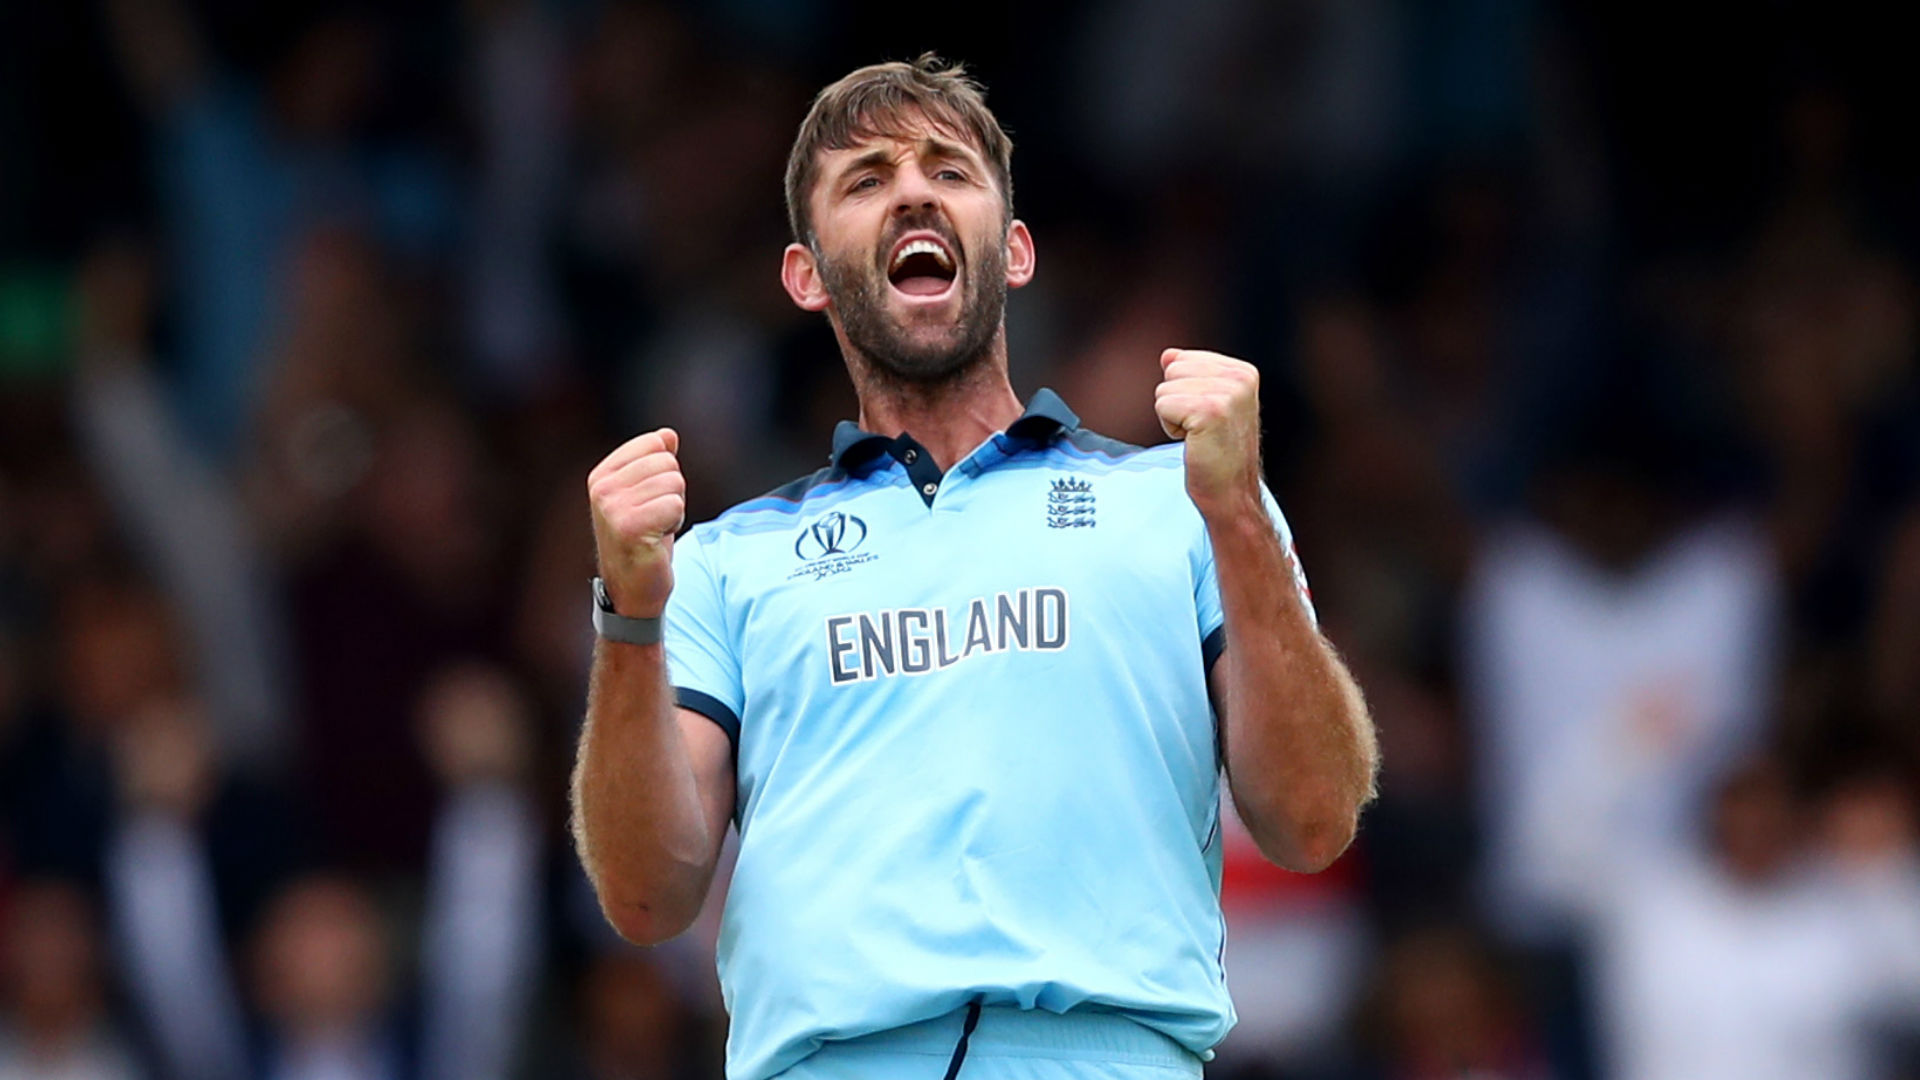 Black Caps set England 242 to win World Cup